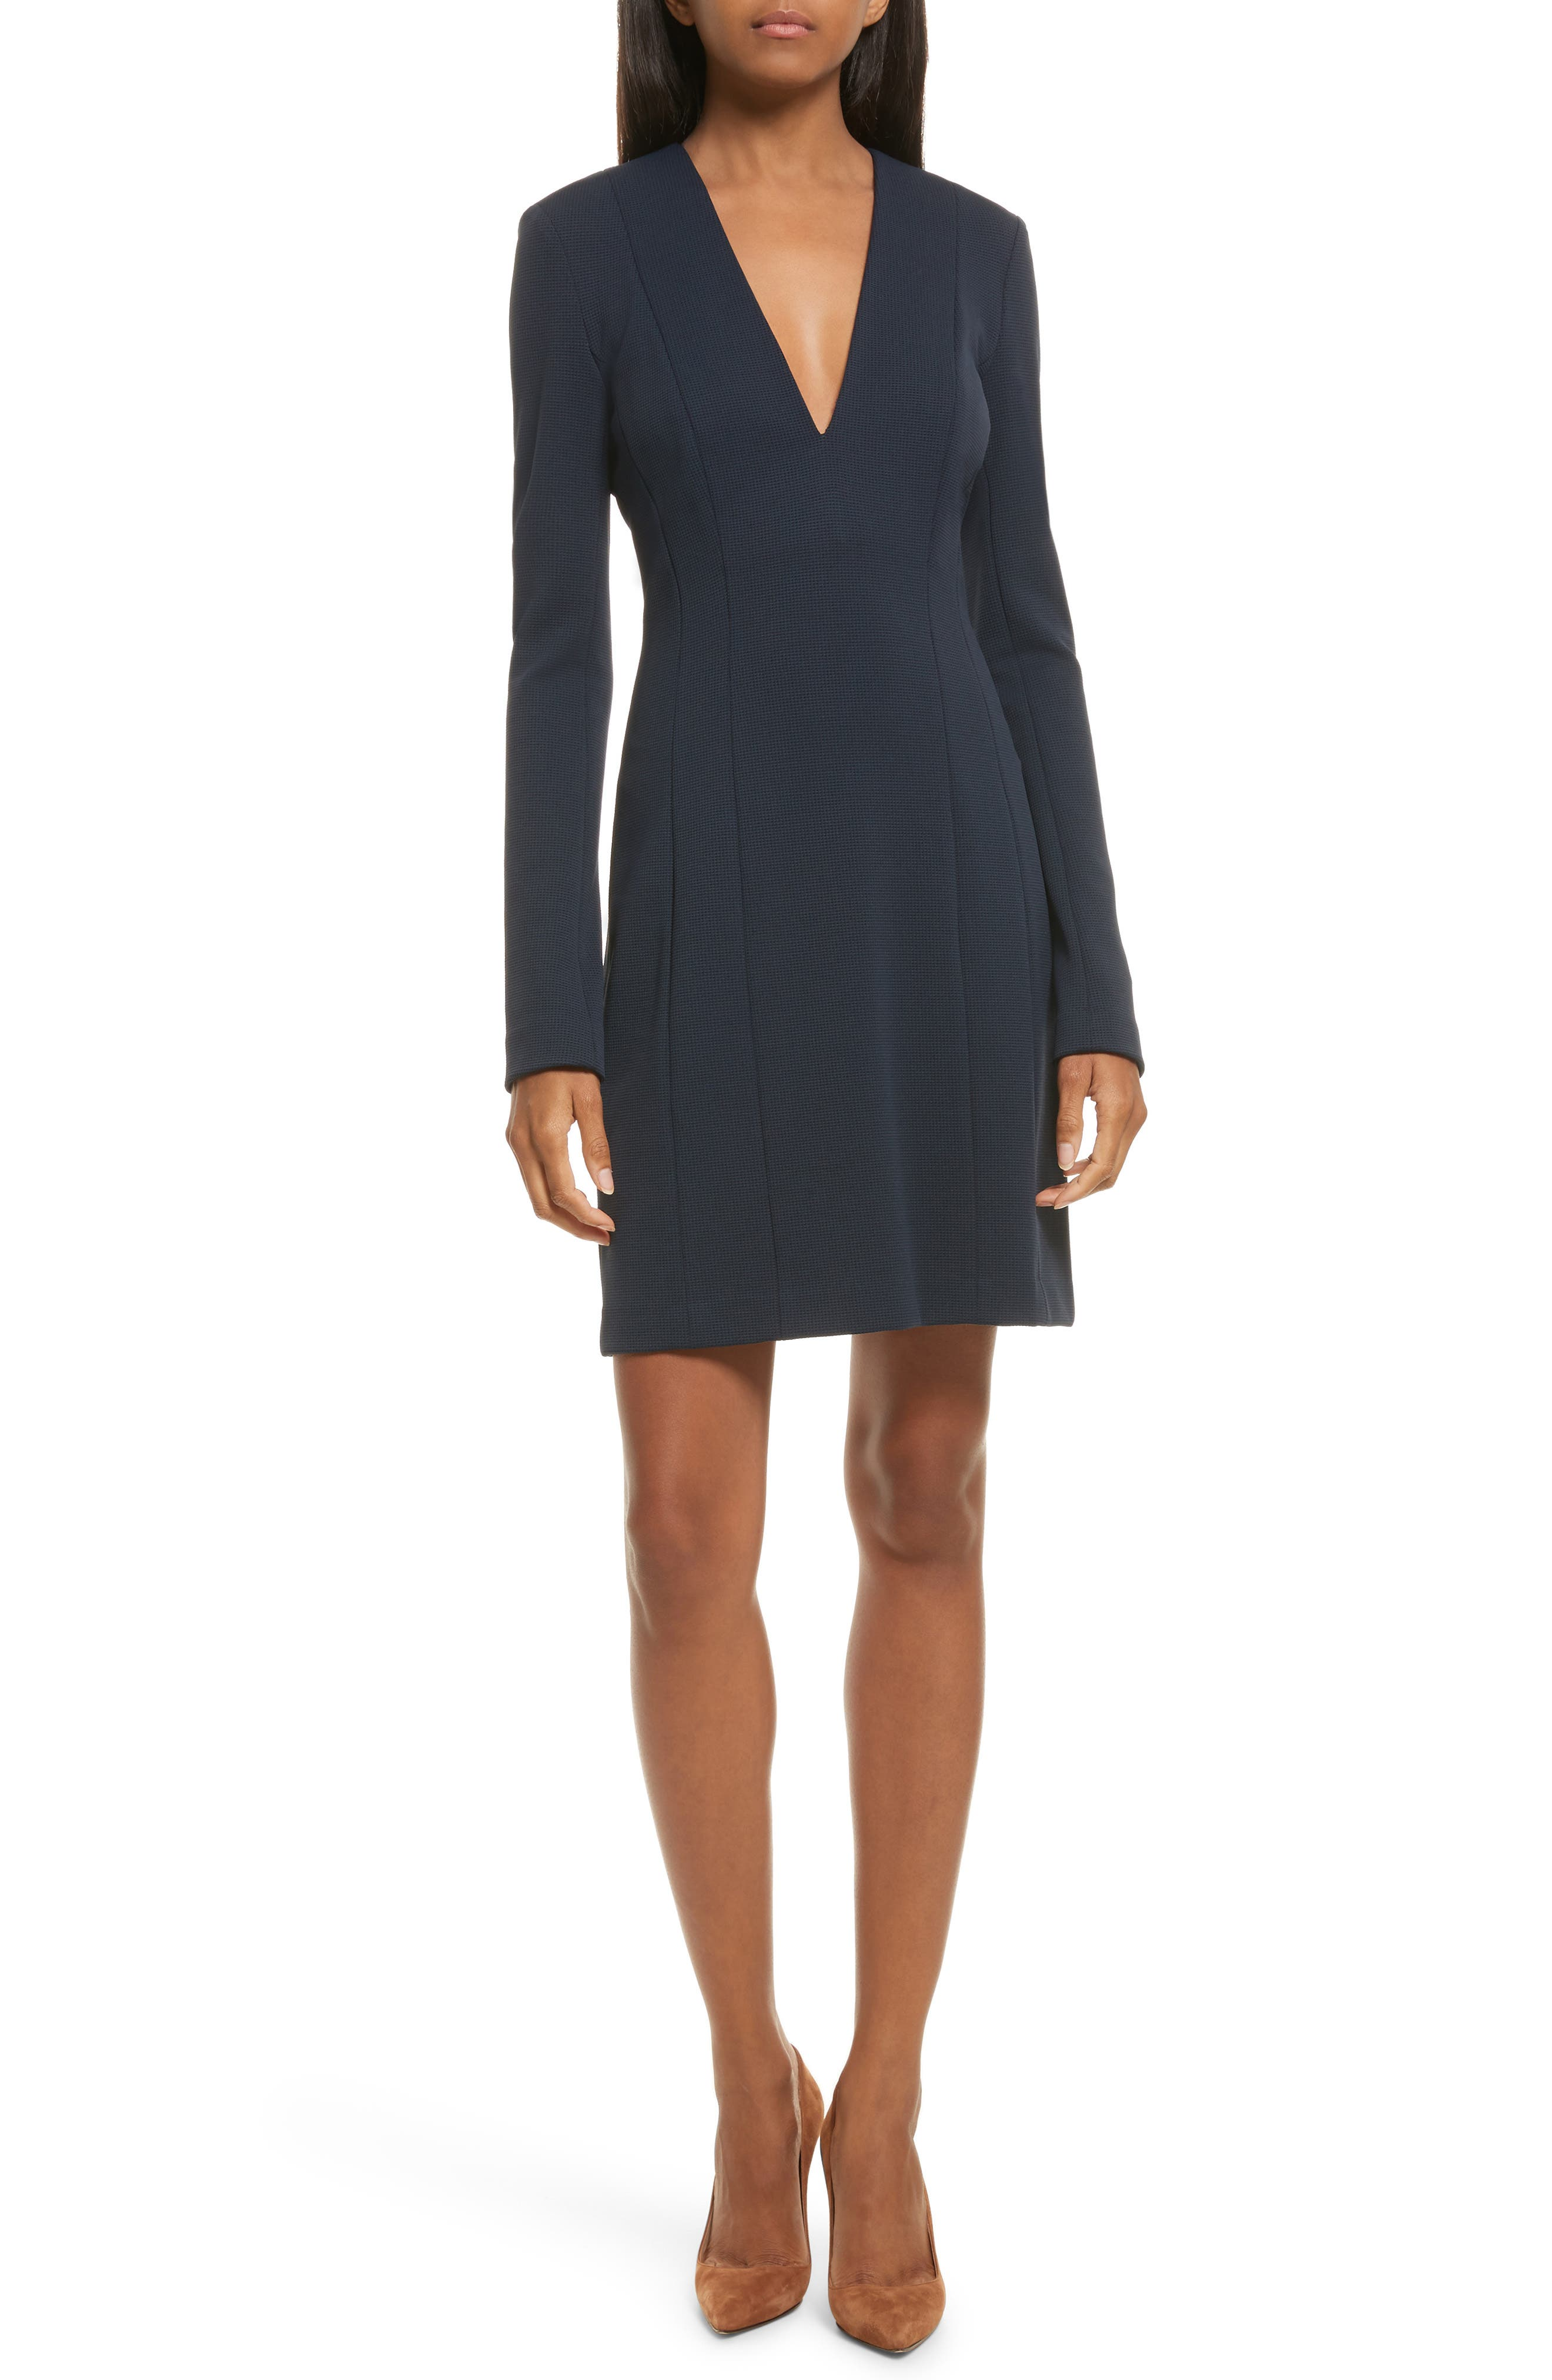 Alternate Image 1 Selected - Theory Tuscon Knit A-Line Dress